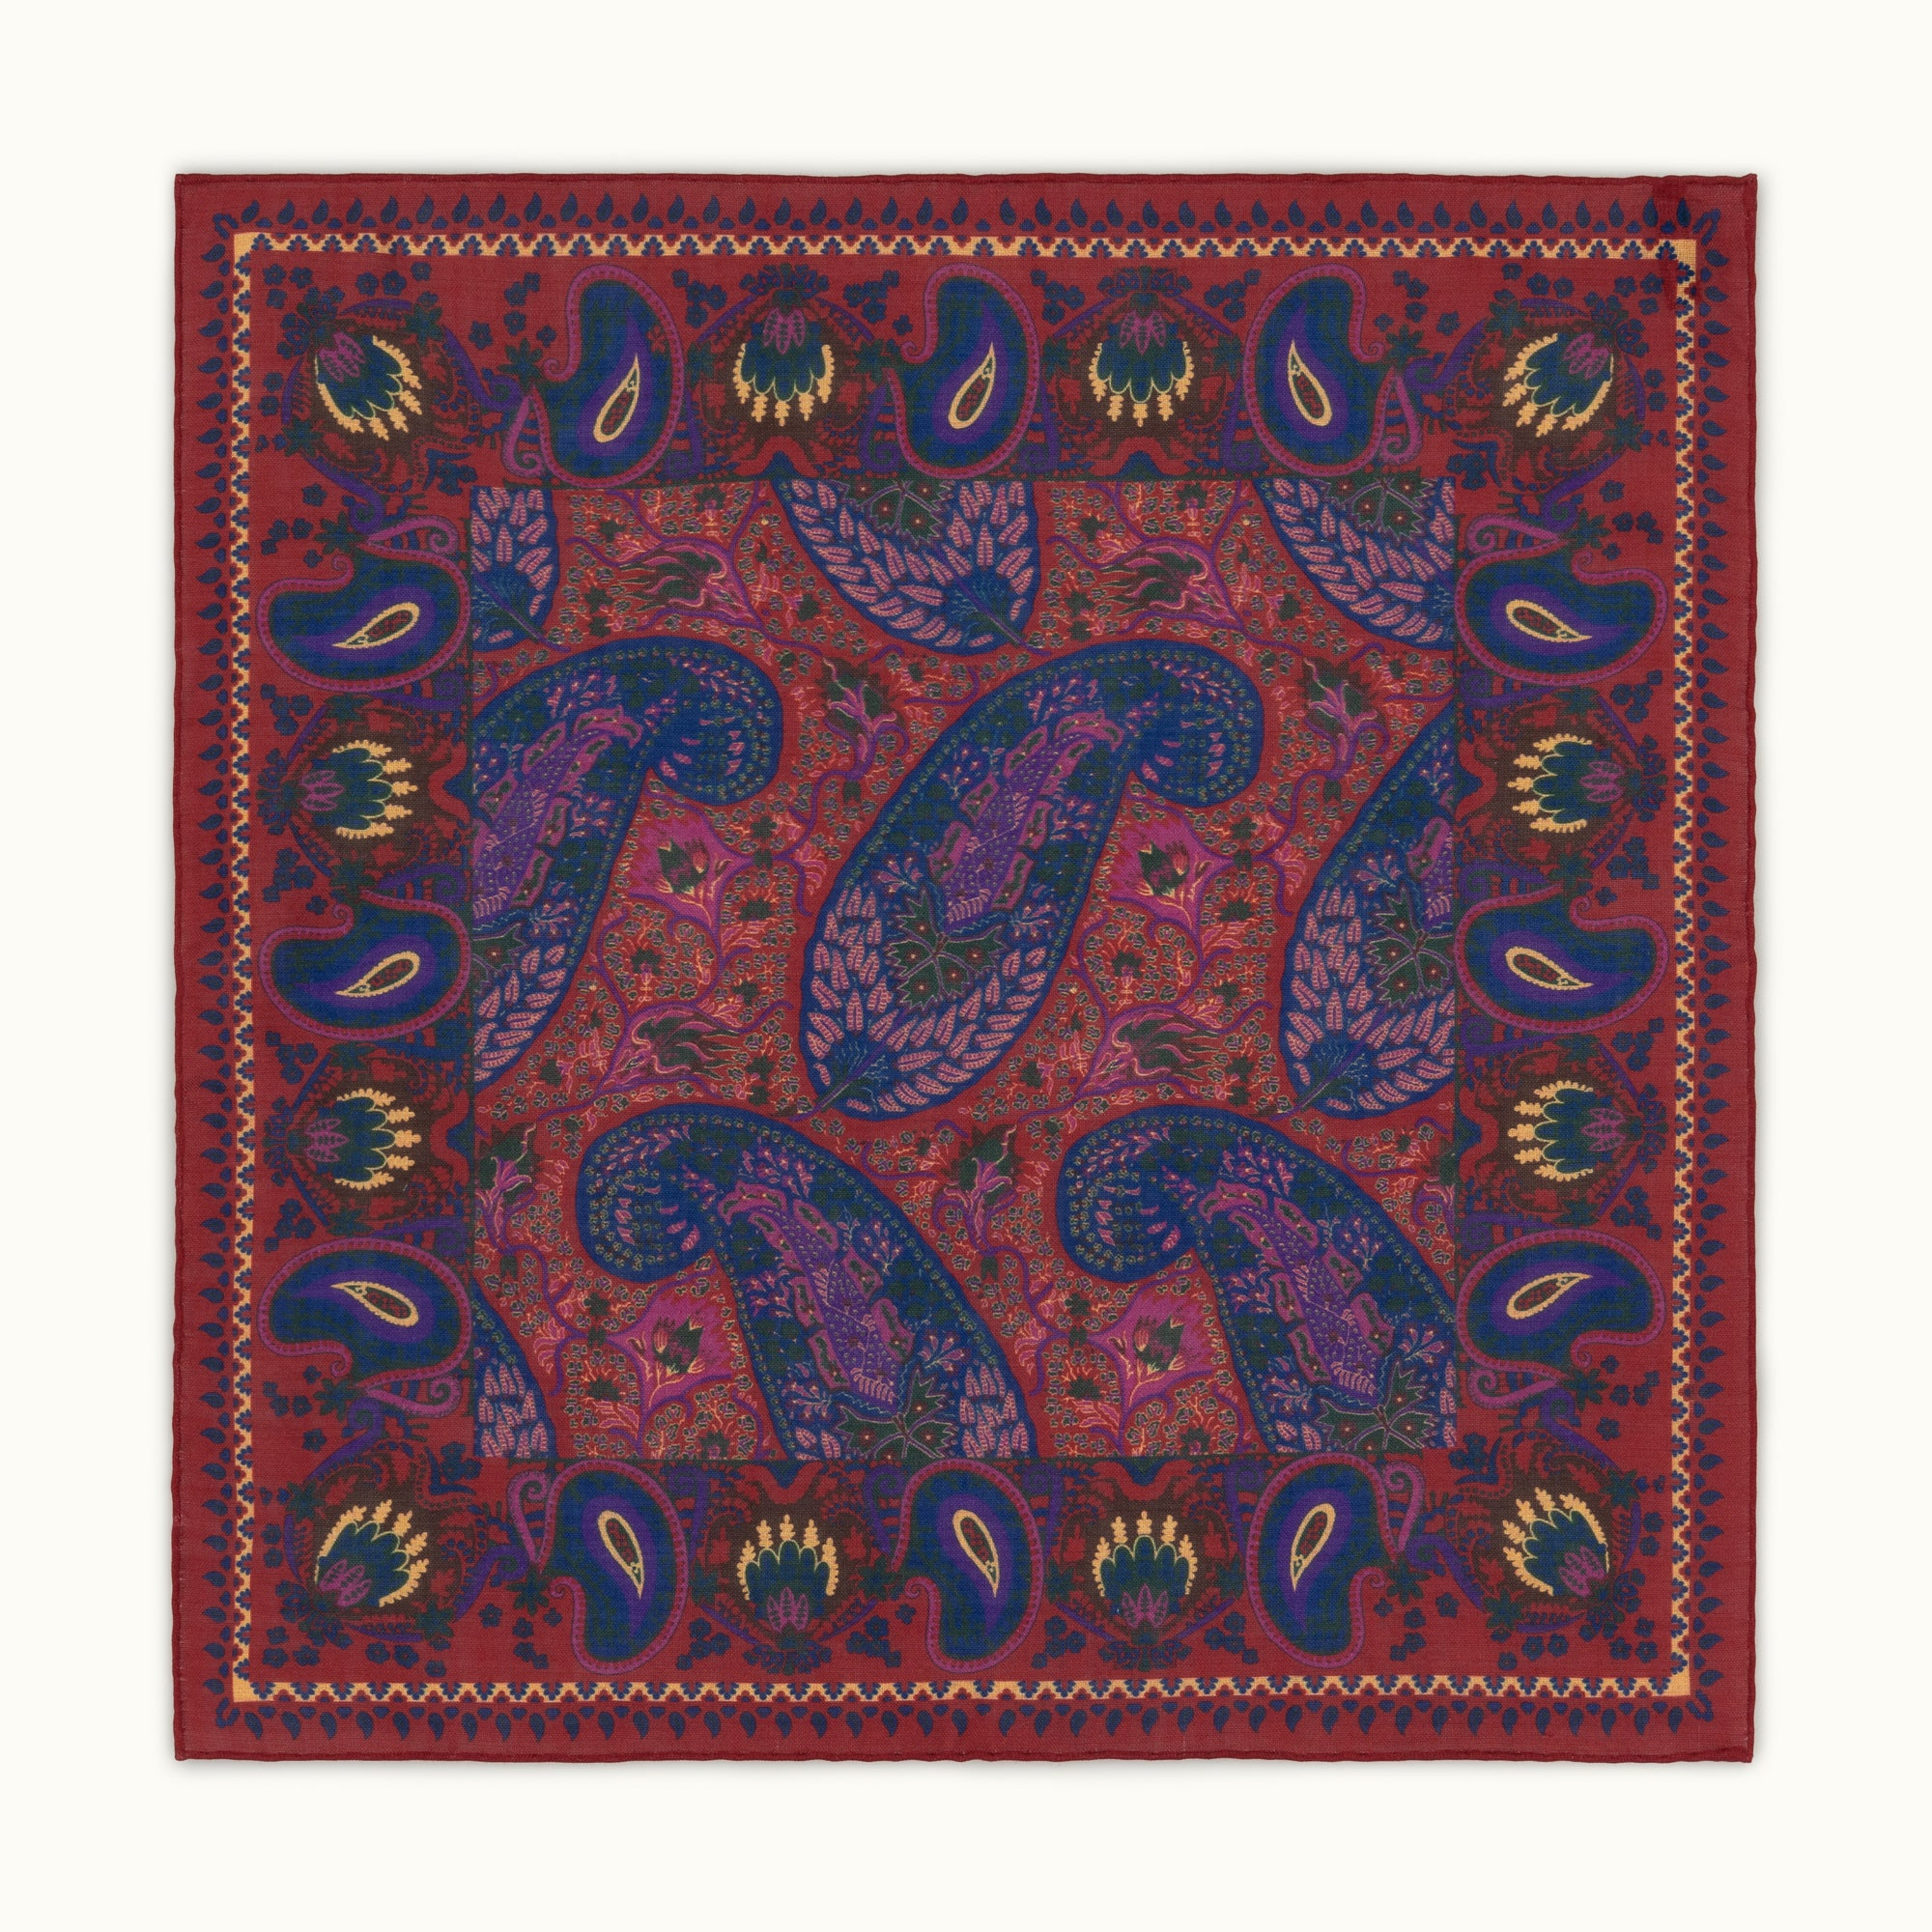 Red Paisley Motif Pocket Square